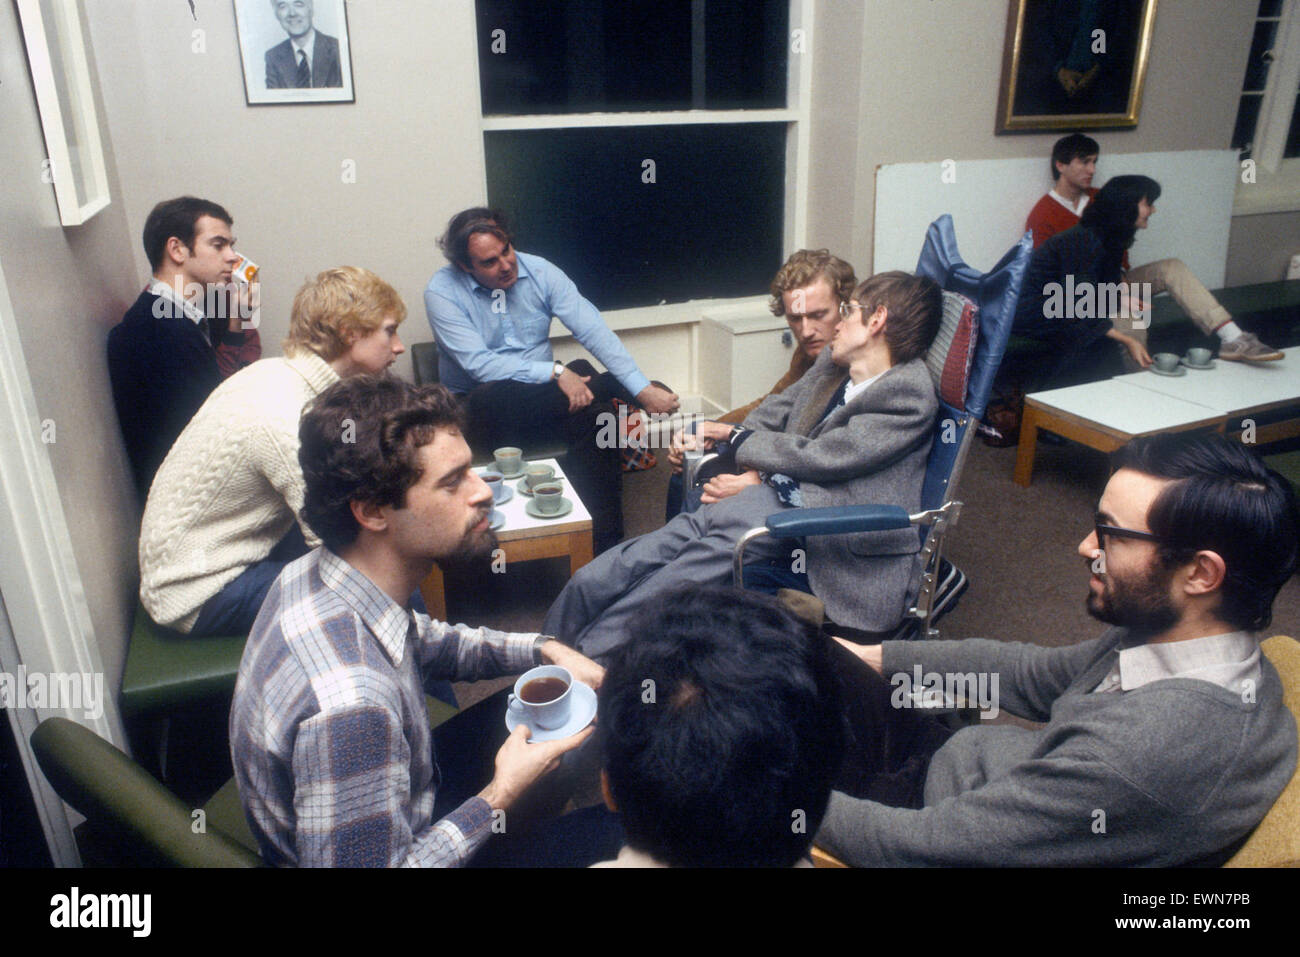 Stephen Hawkins Talks to post grad students during tea break - Stock Image